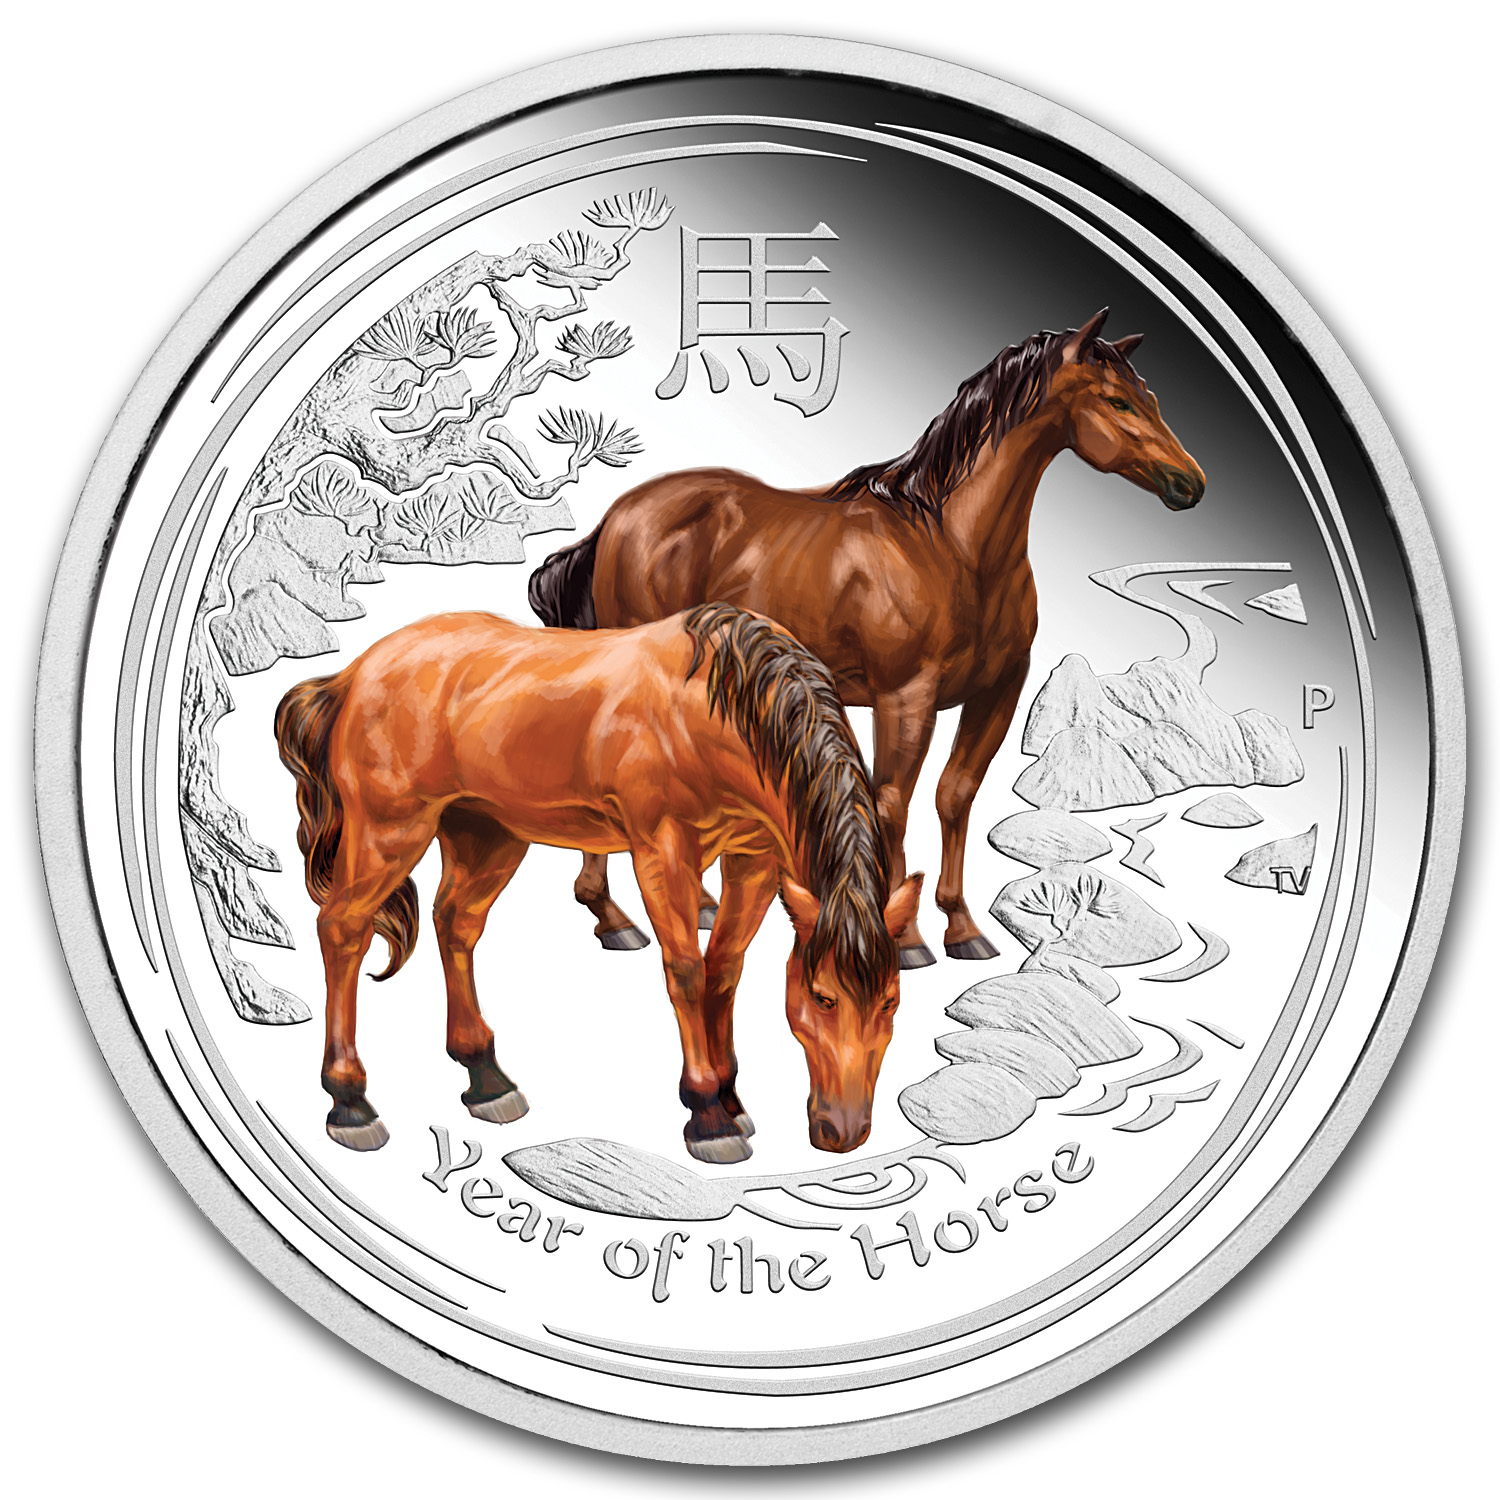 2014 1 oz Silver Australian Year of the Horse Proof (Colorized)